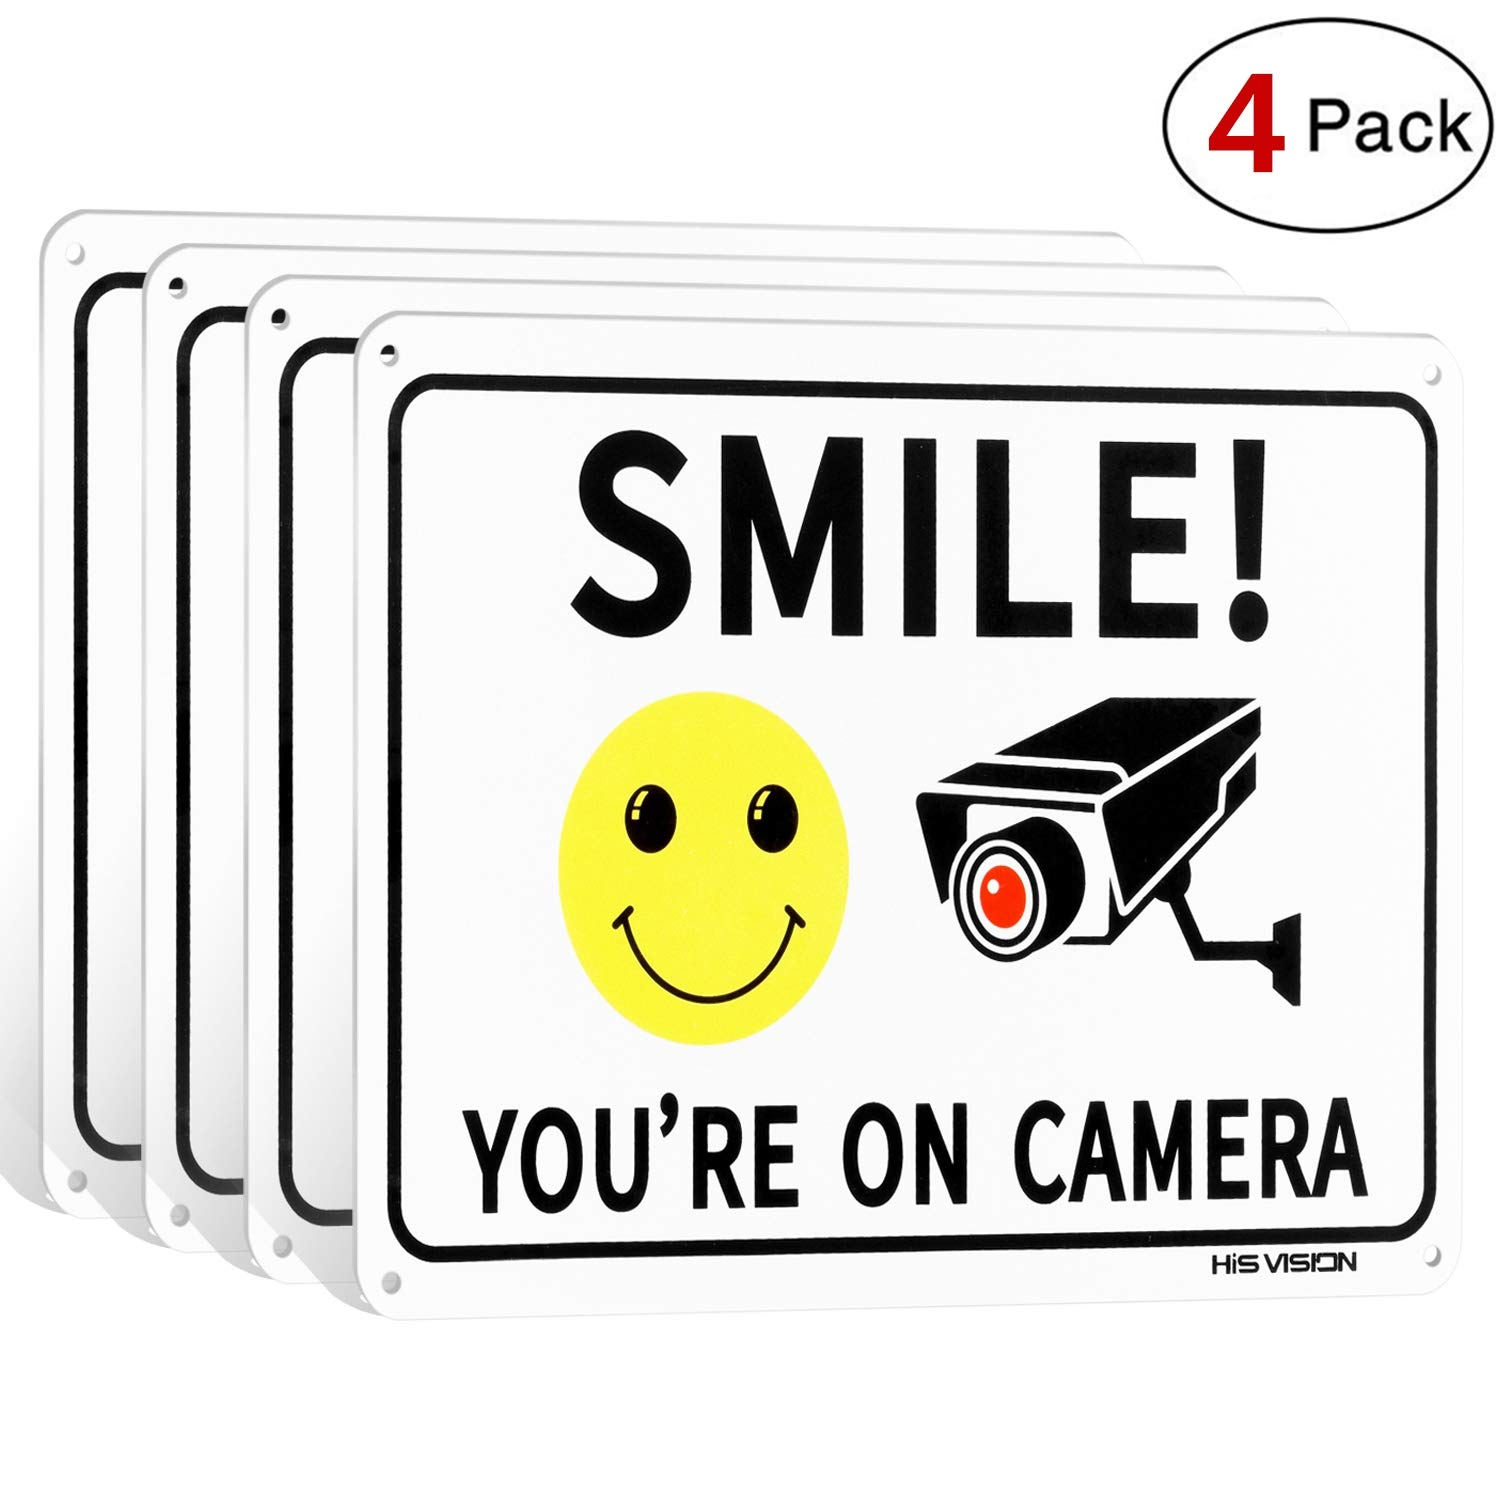 (4 Pack) Smile You're on Camera, Video Surveillance Sign, 10''x7'' Rust Free Aluminum Metal,Warning Sign for CCTV Monitoring System by HISVISION.